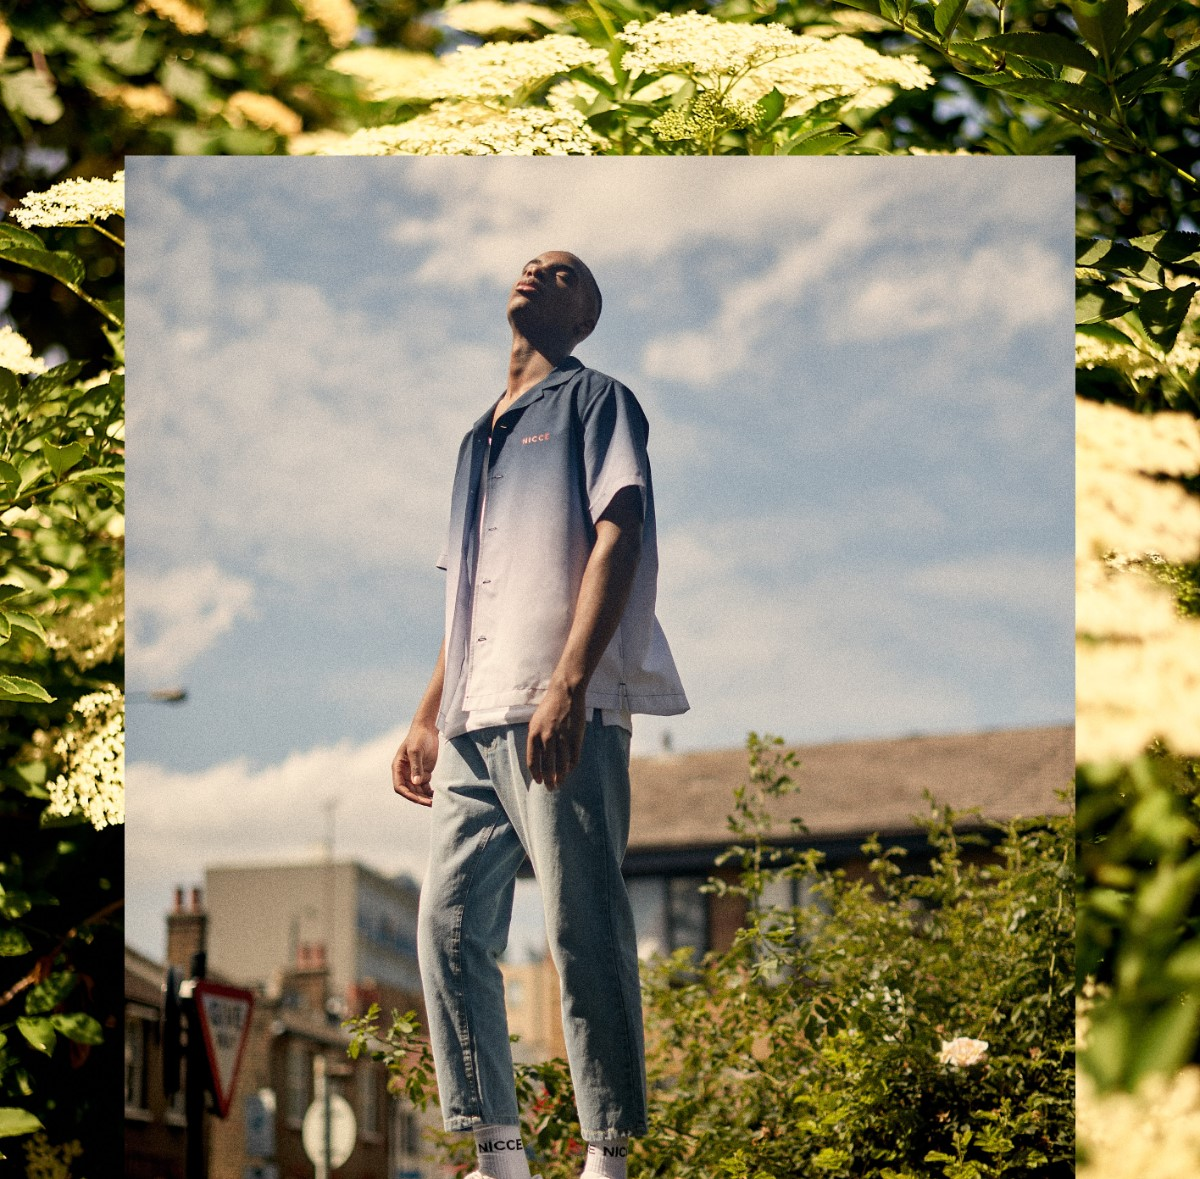 NICCE heads to the Local Park for Latest Editorial